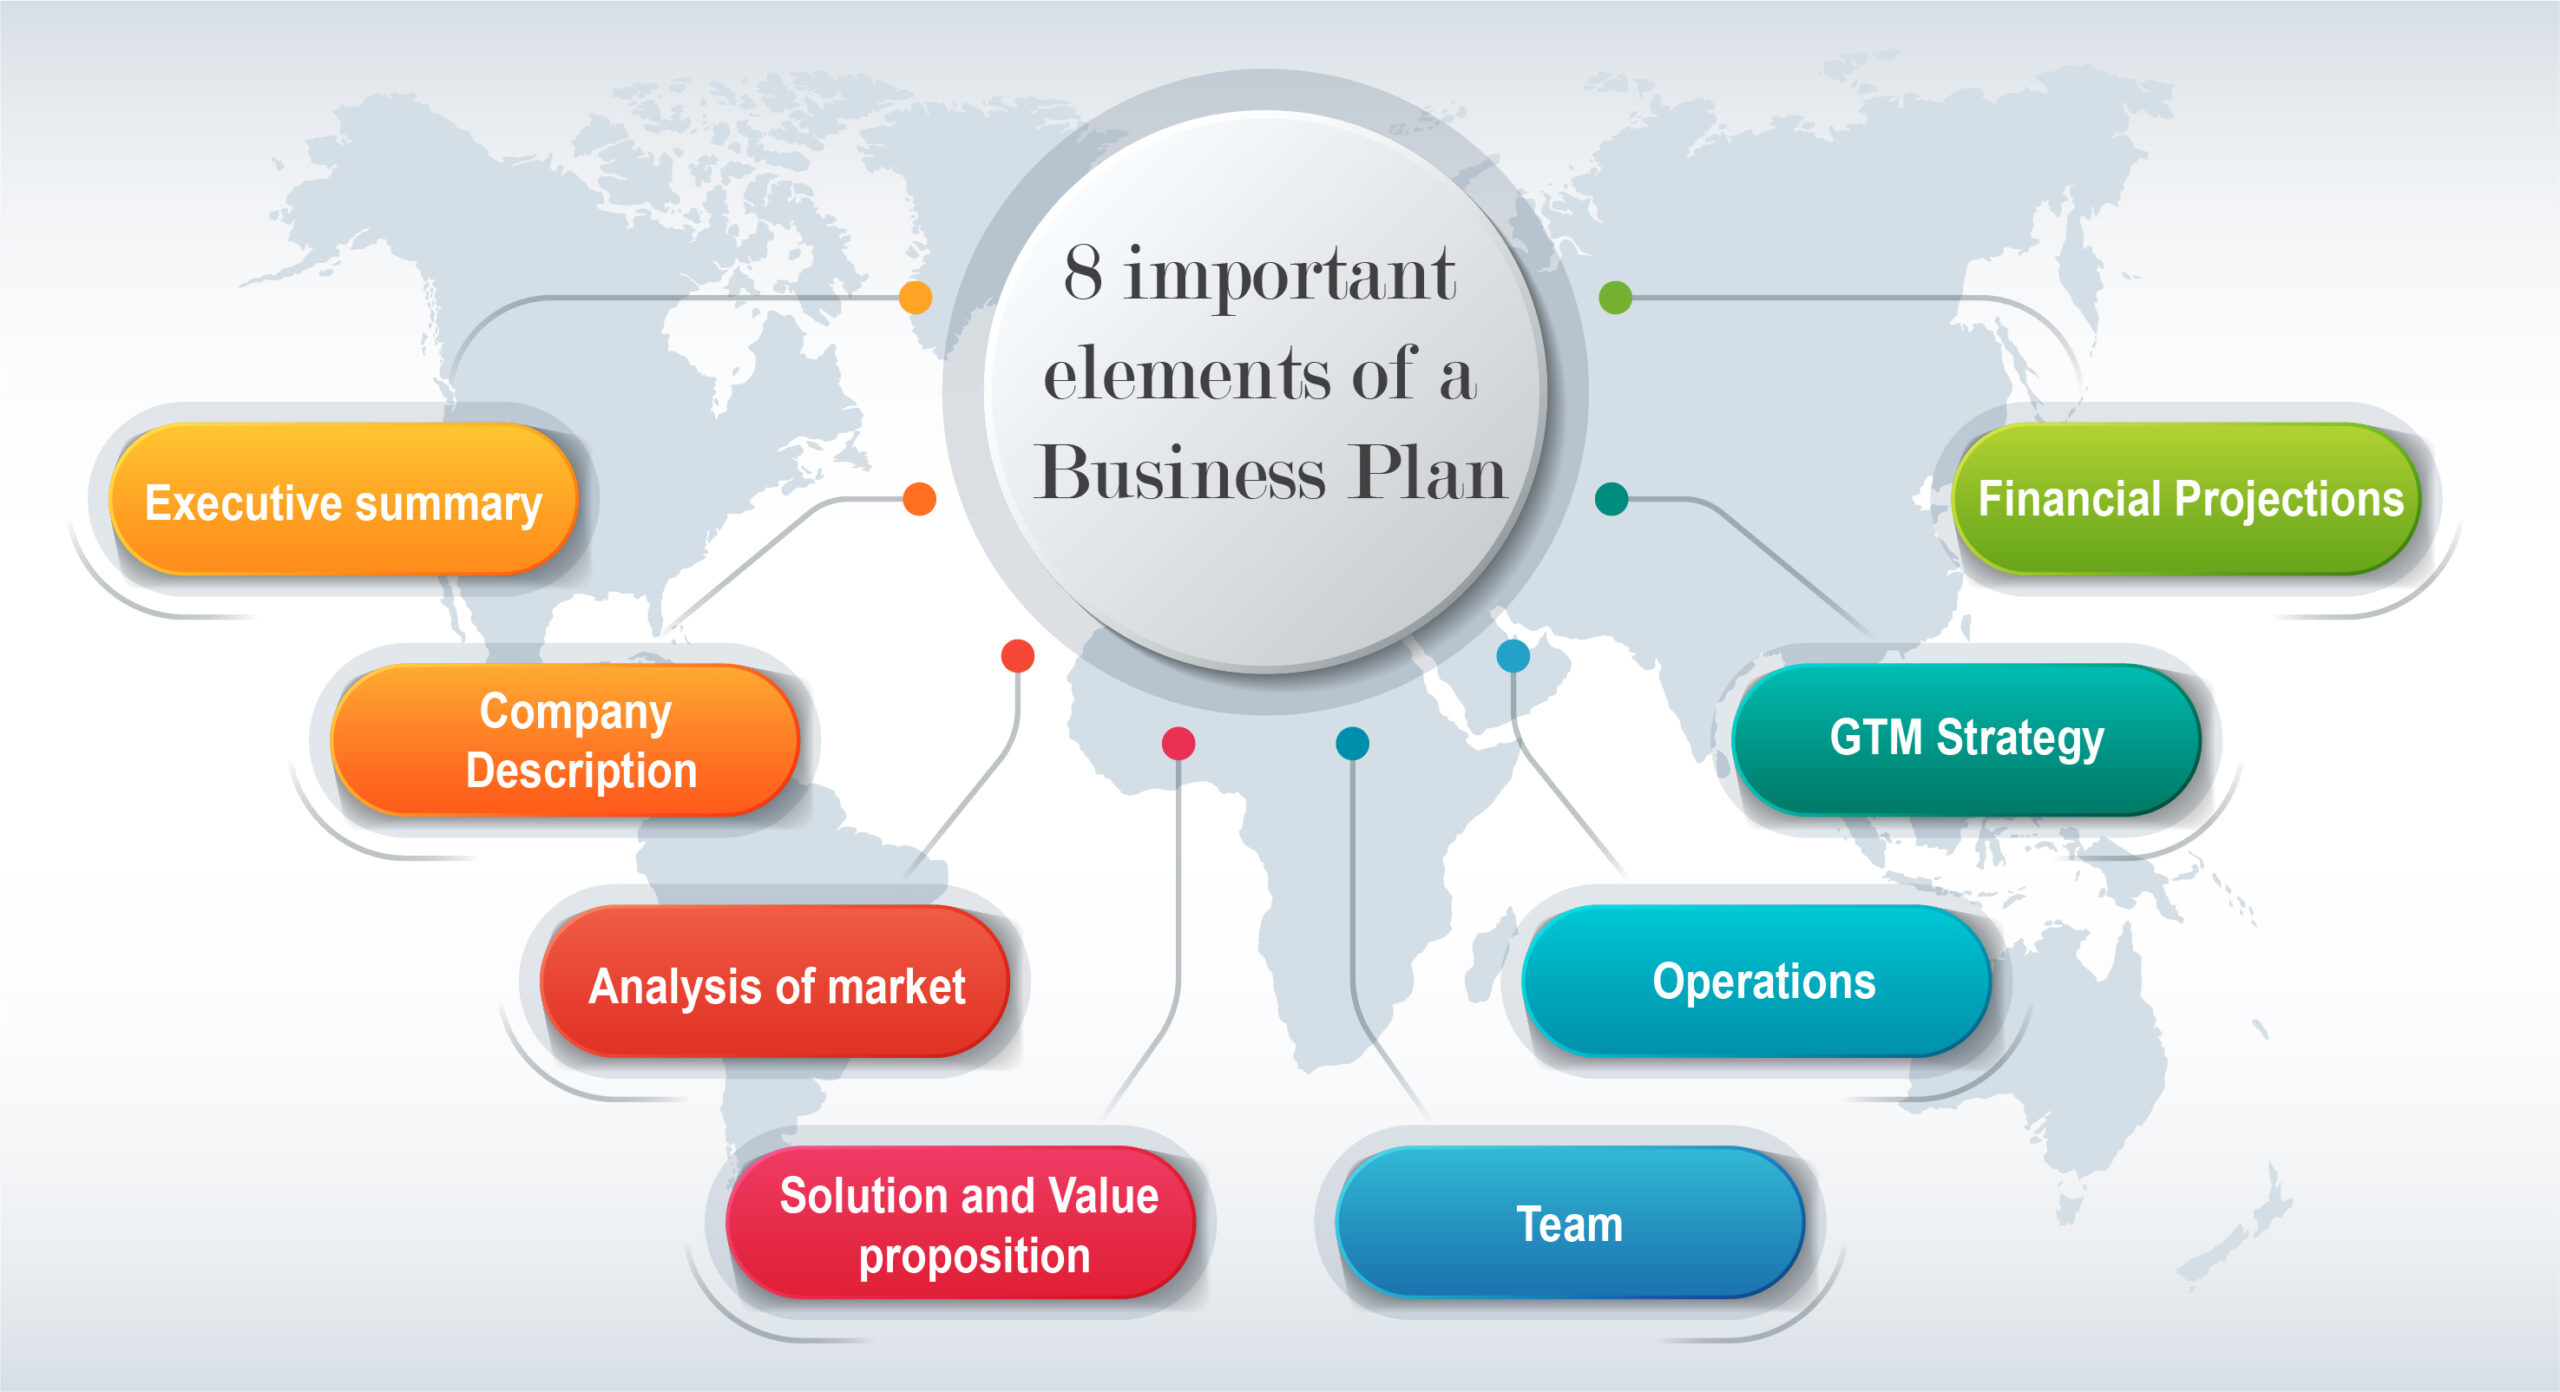 8 important elements of a business plan